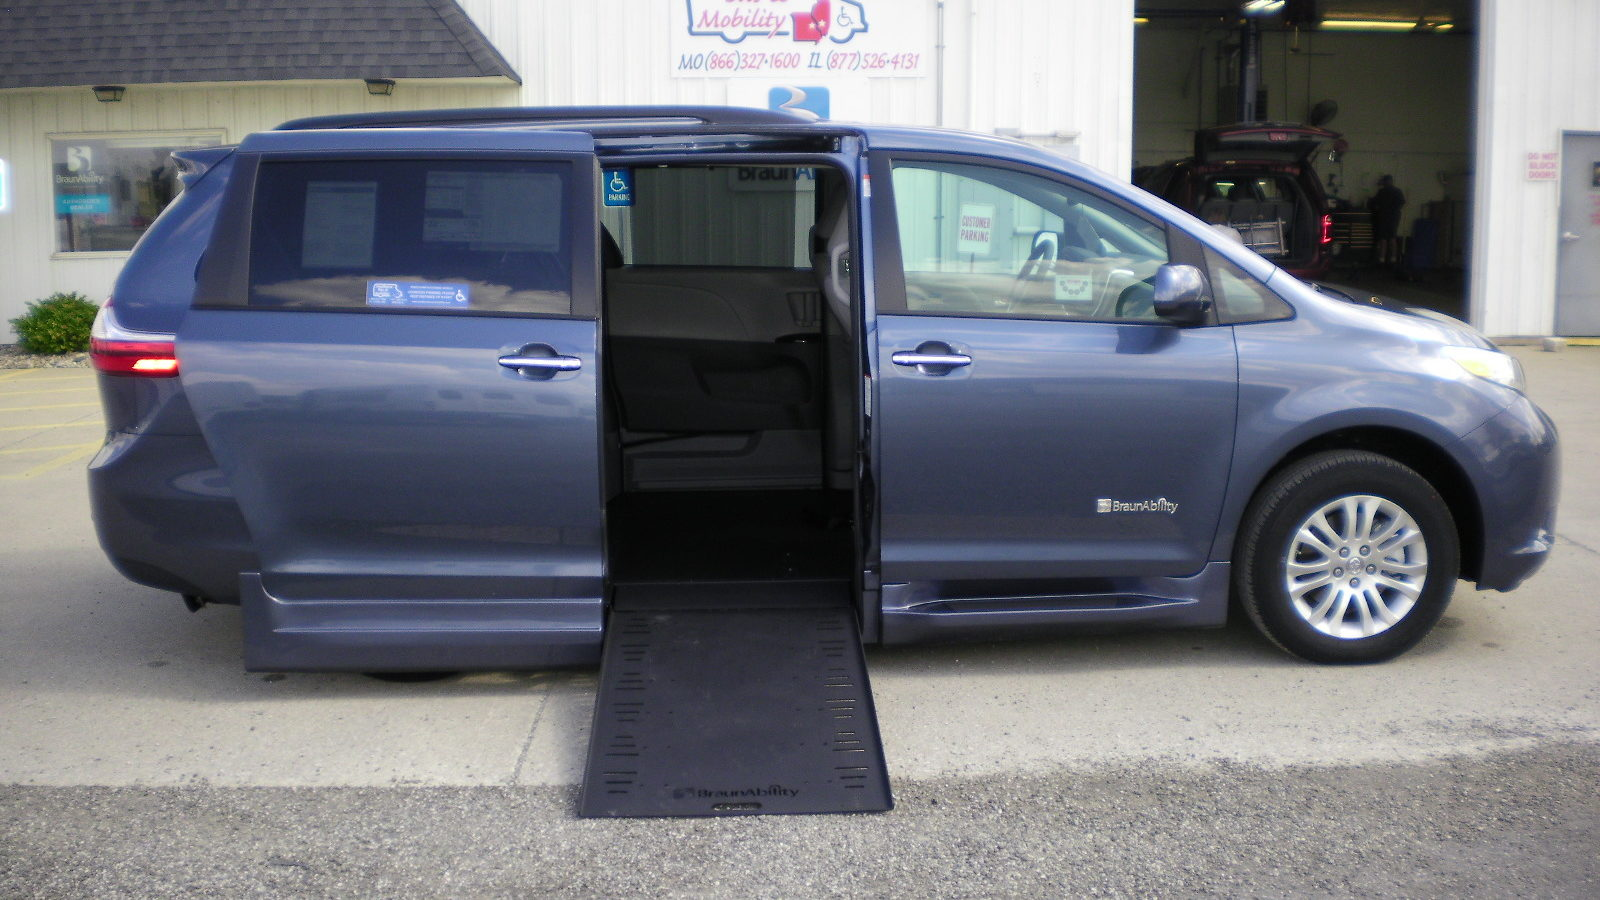 2017 toyota sienna xle prem braunability power infloor ramp. Black Bedroom Furniture Sets. Home Design Ideas